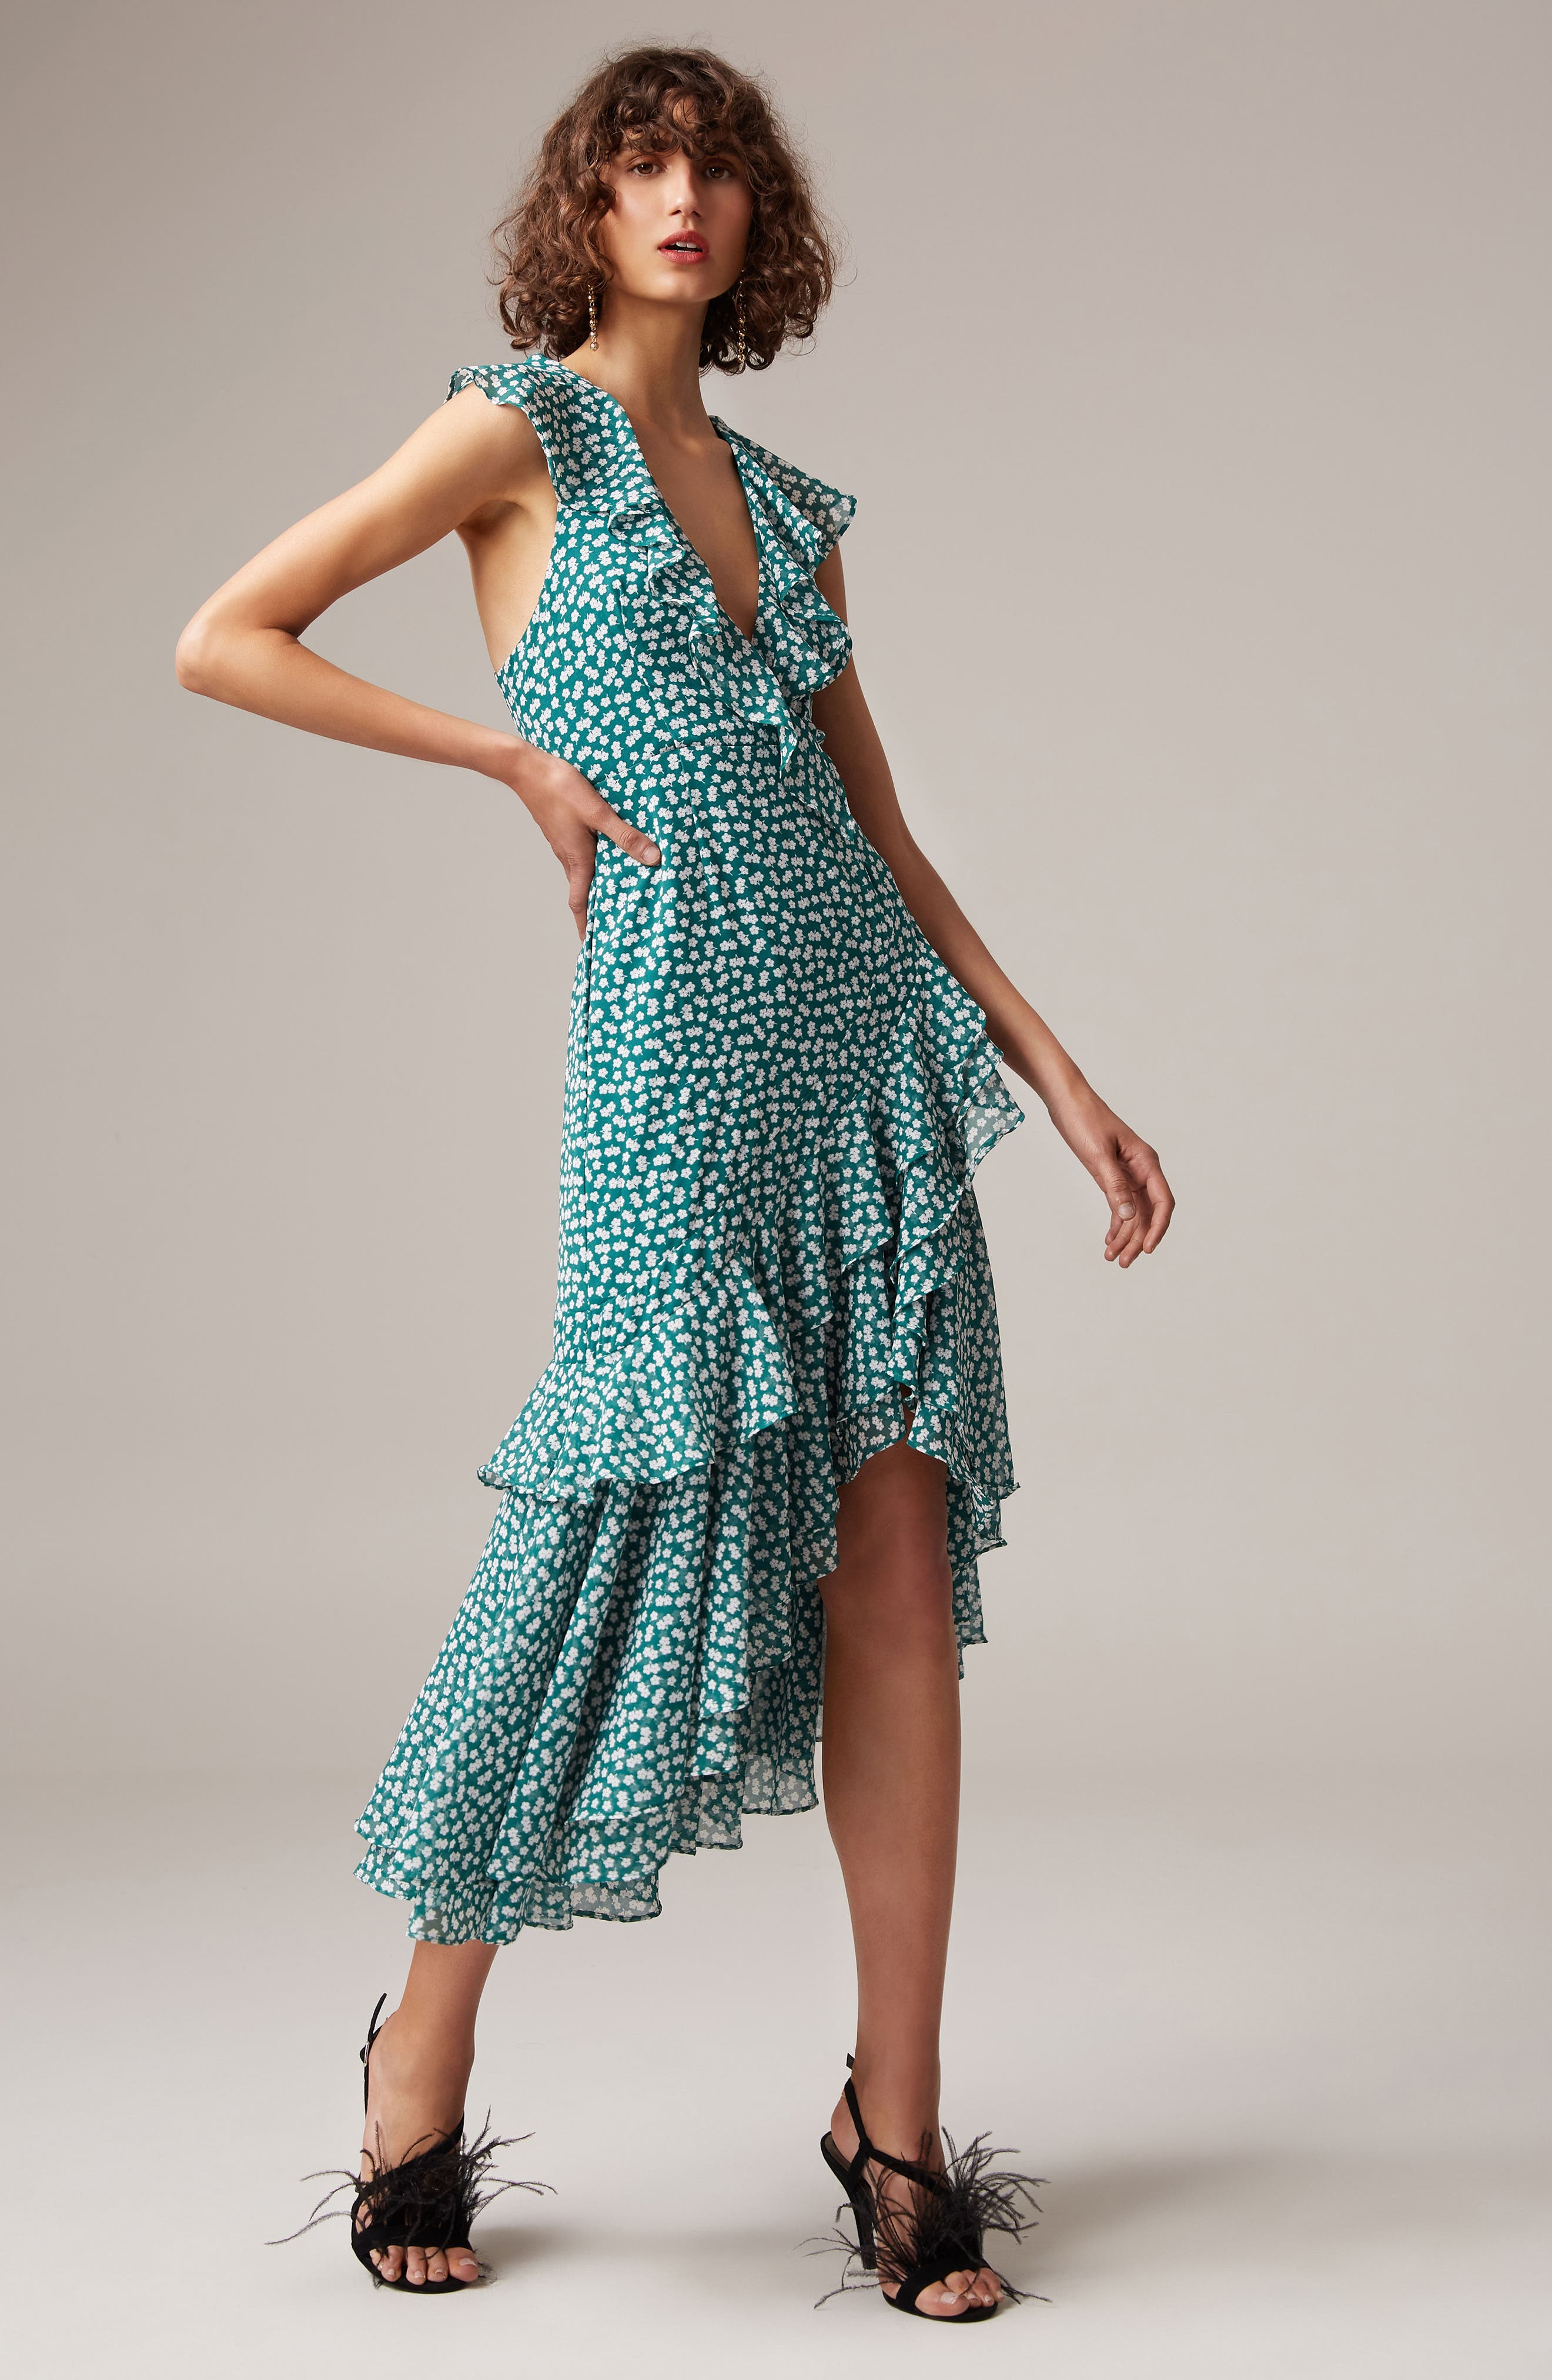 Be About You Ruffle Midi Dress,                             Alternate thumbnail 7, color,                             303